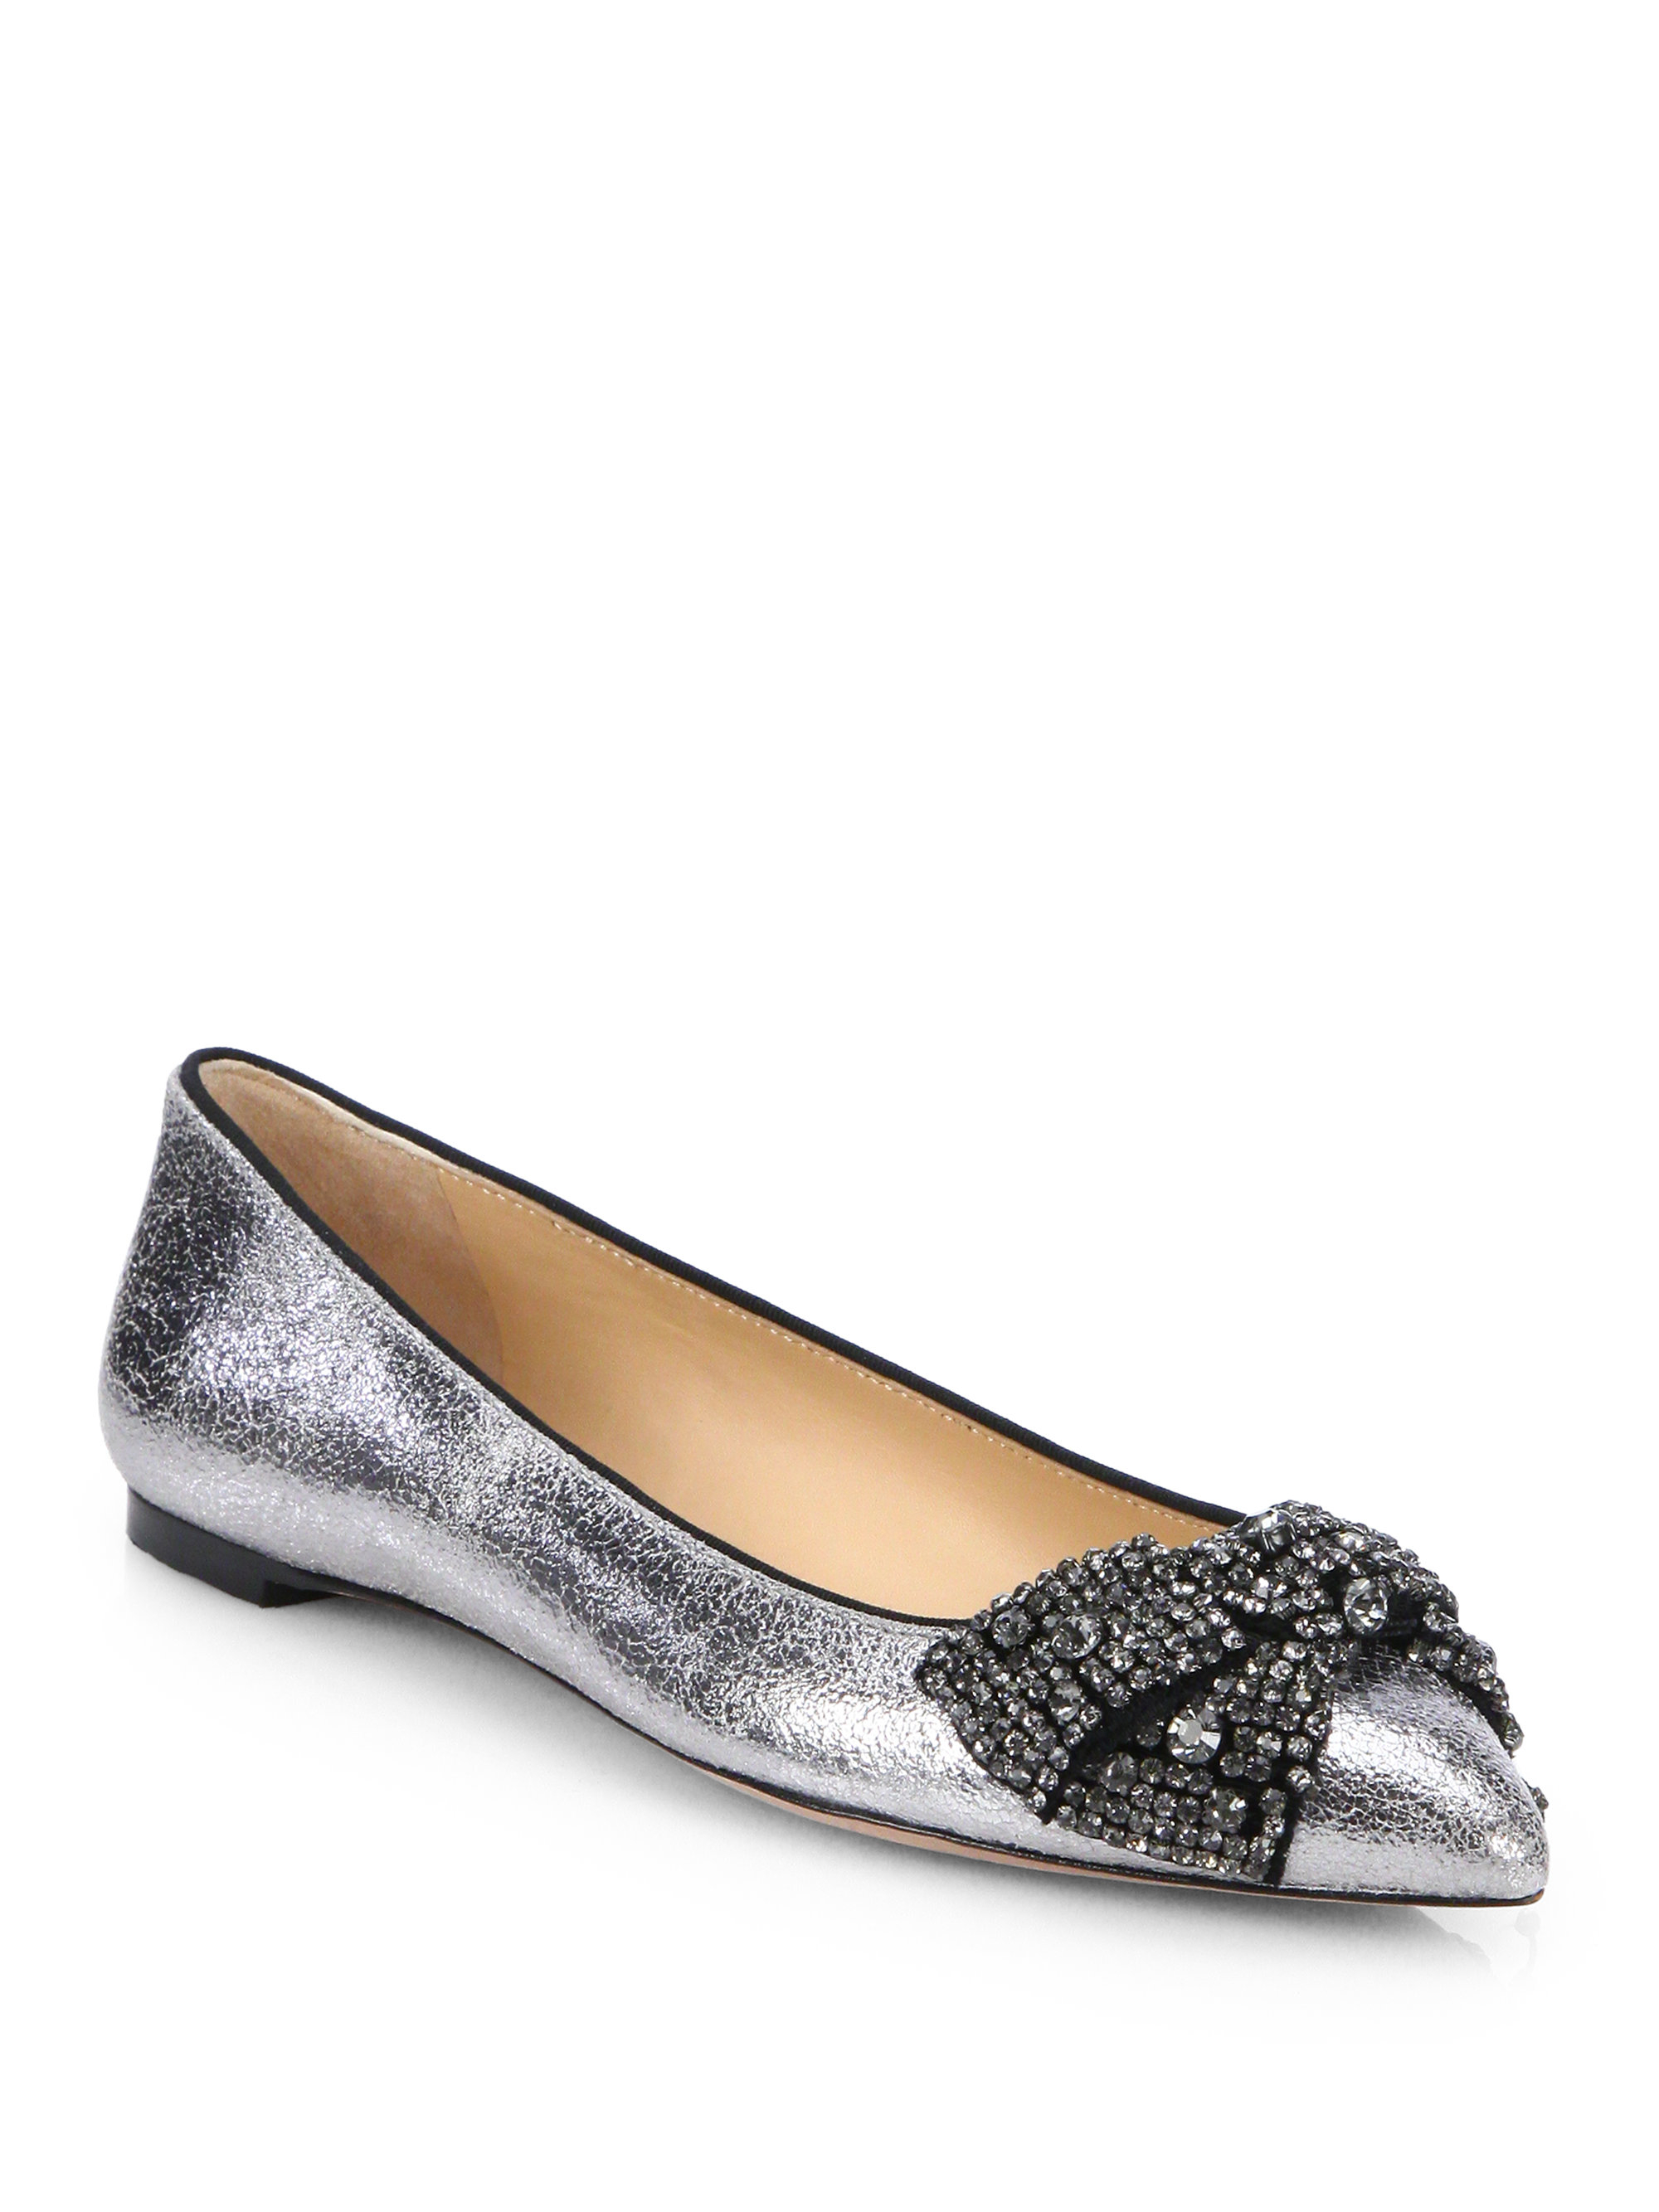 Tory Burch Vanessa Embellished Flats for cheap discount outlet prices outlet real RhjhnzFKe